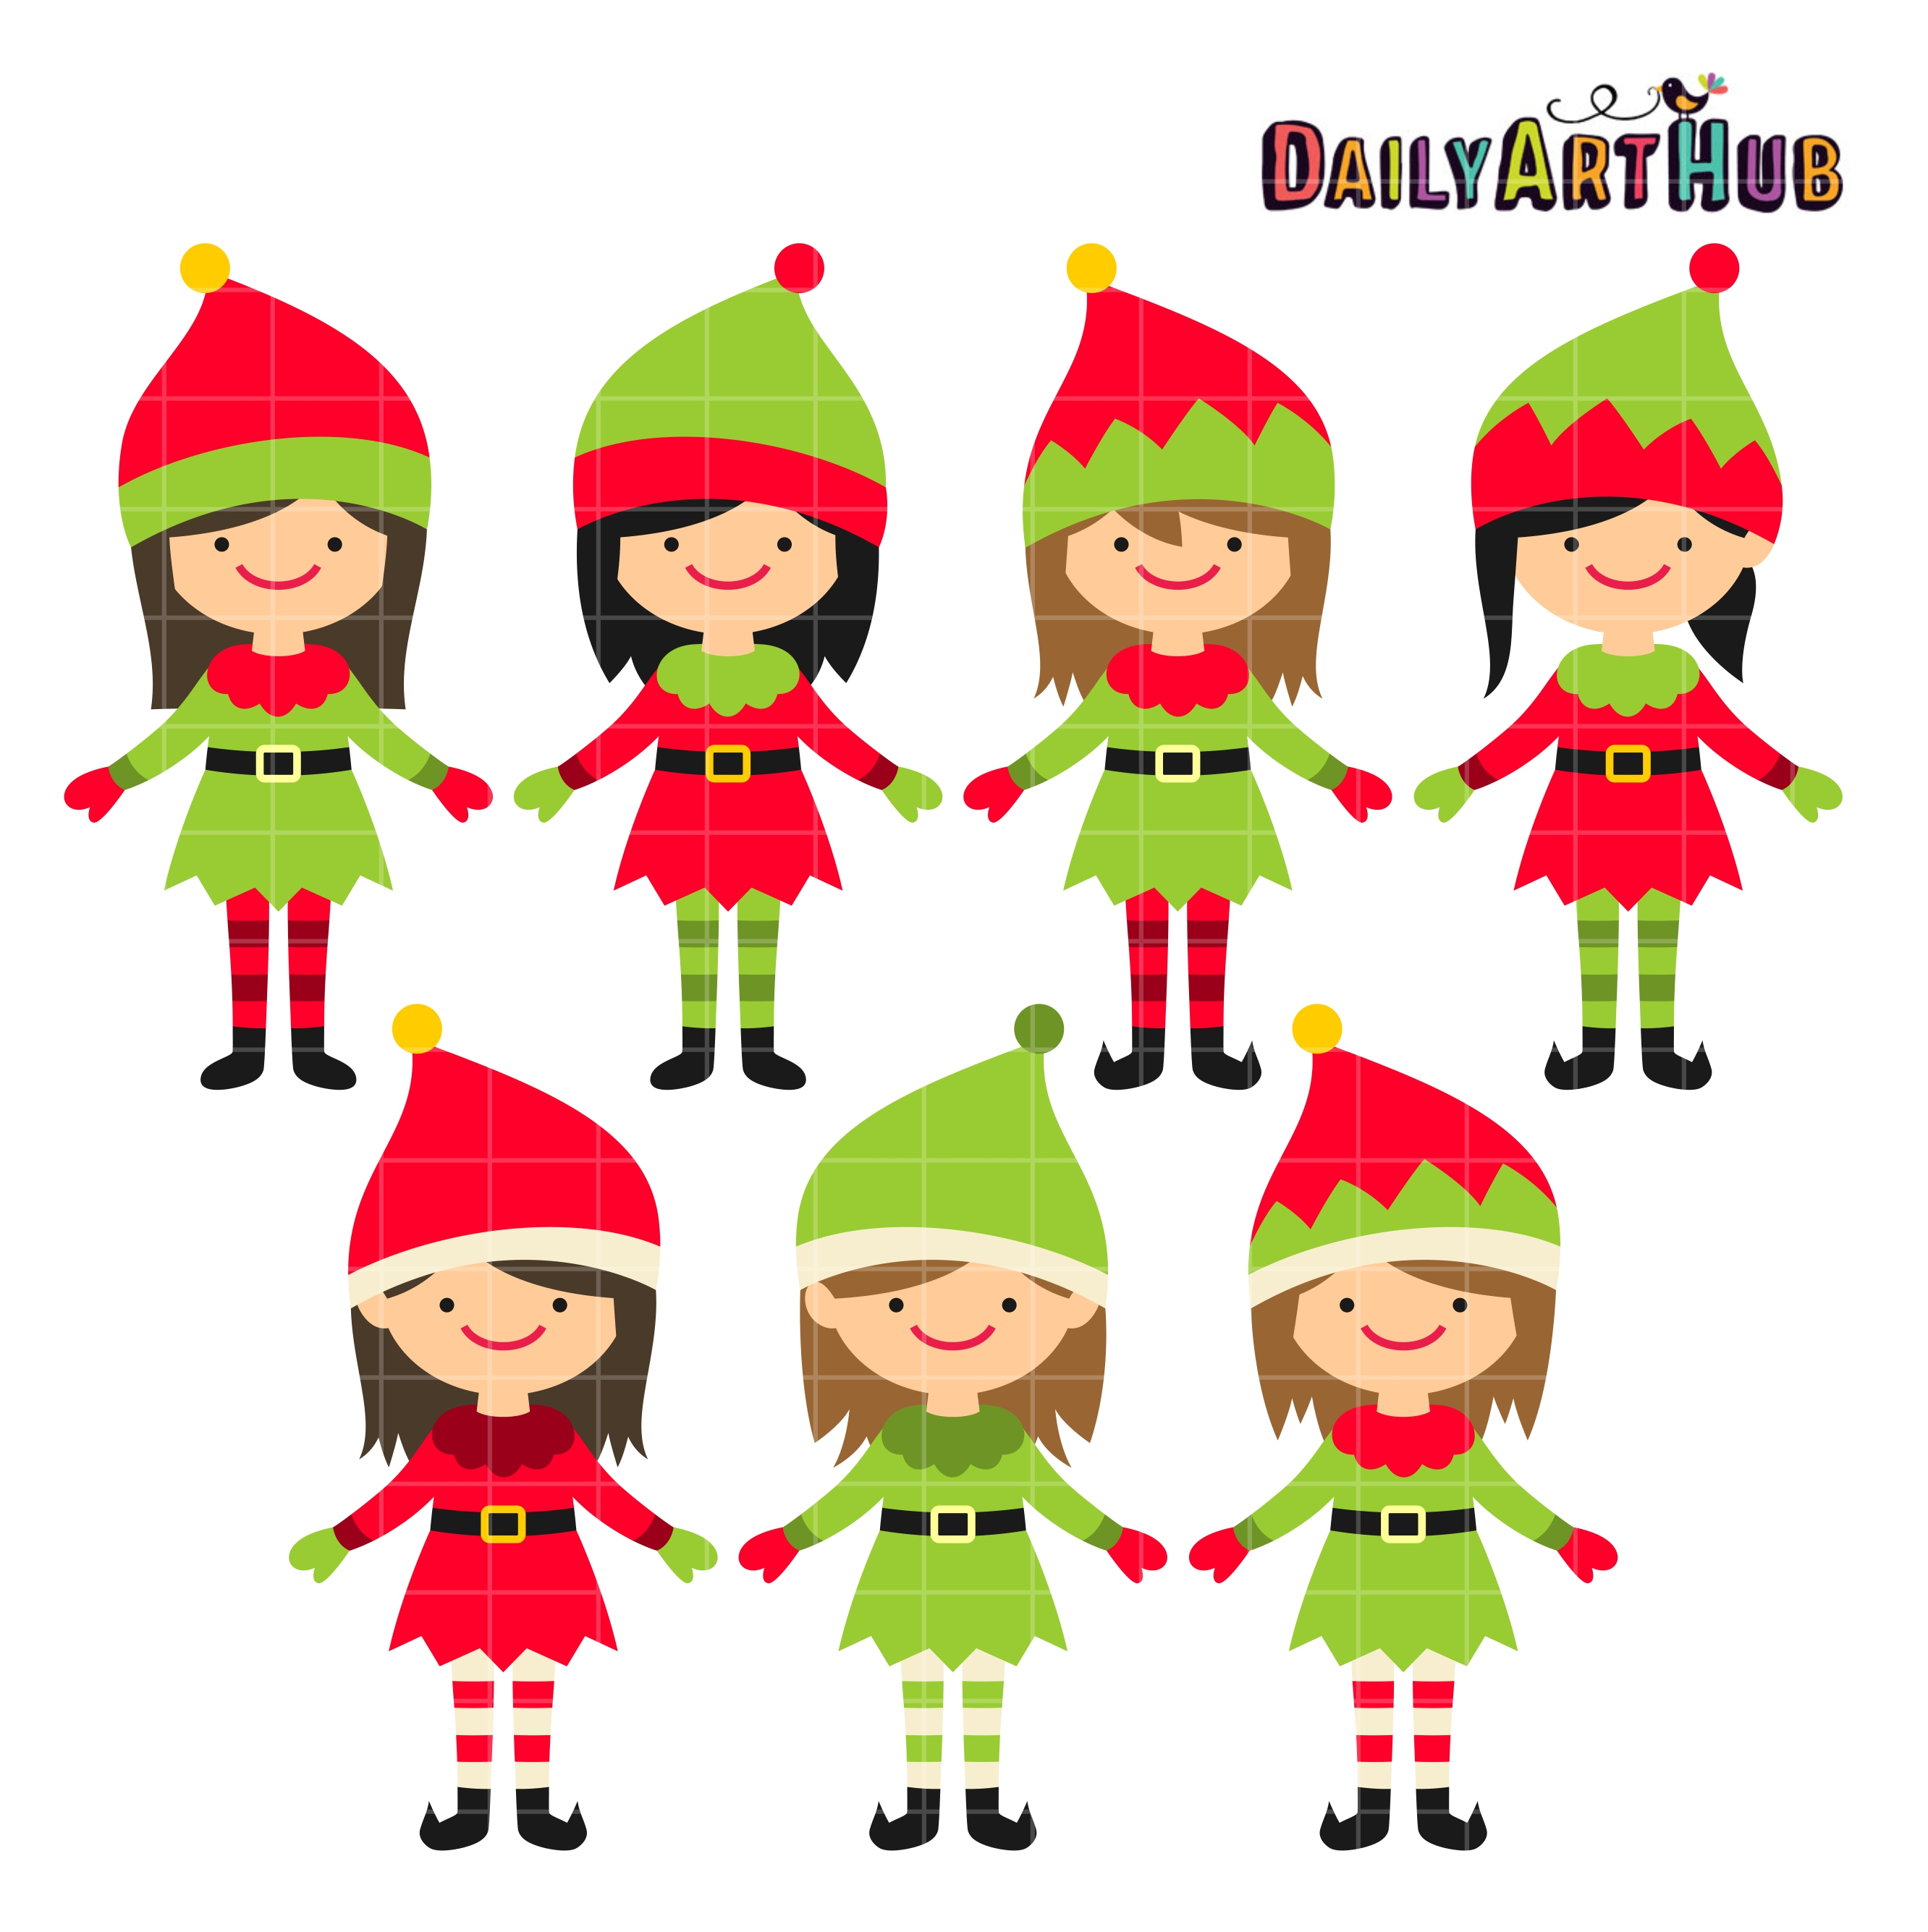 2664x2670 Christmas Cute Elves Clip Art Set Daily Art Hub Free Clip Art